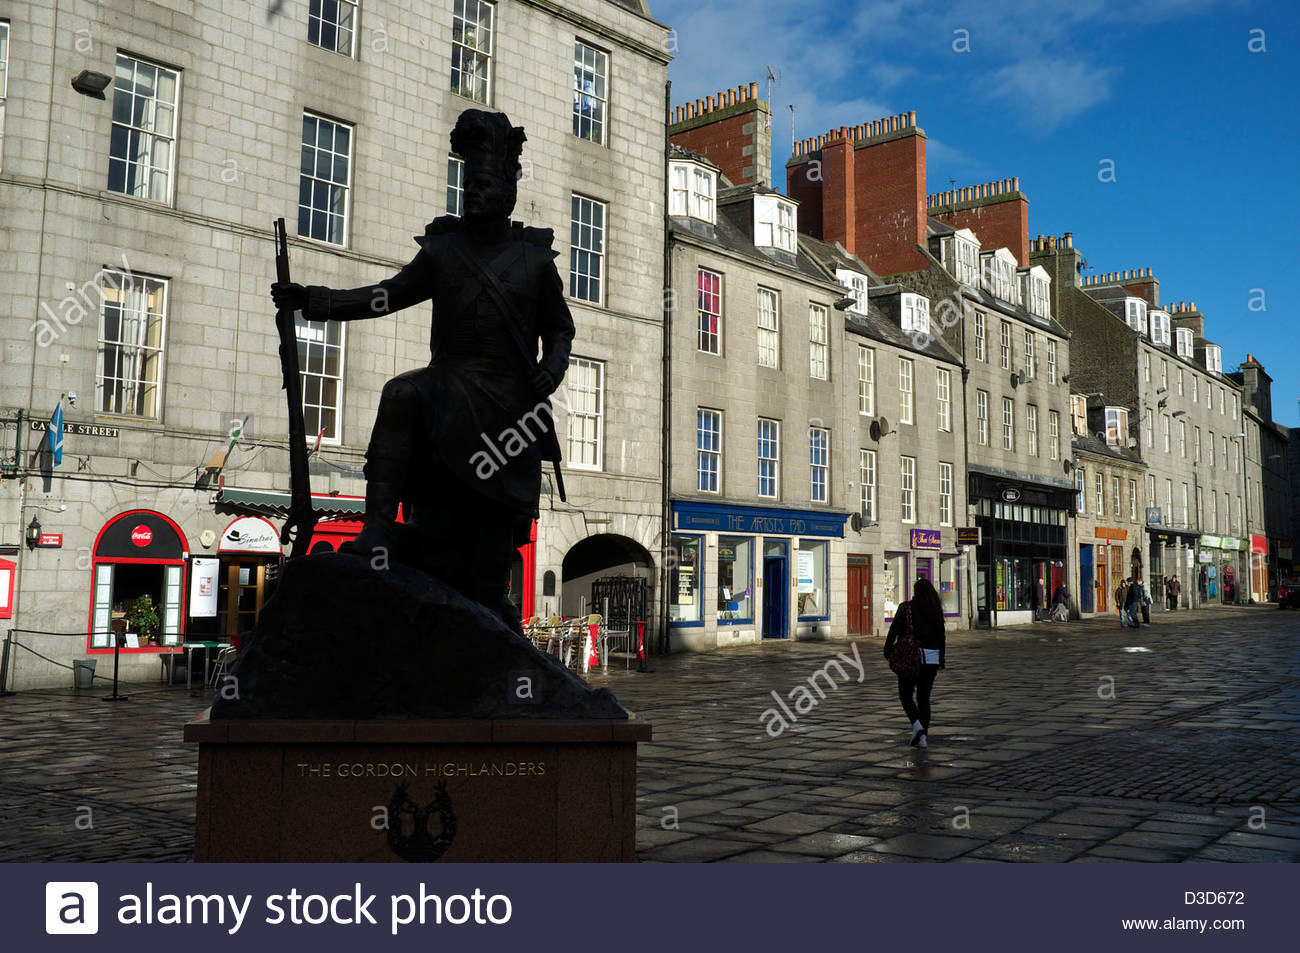 Gordon Highlanders statue silhouetted against a row of buildings in Castle Street in Castle Square, Aberdeen, Scotland, - Stock Image